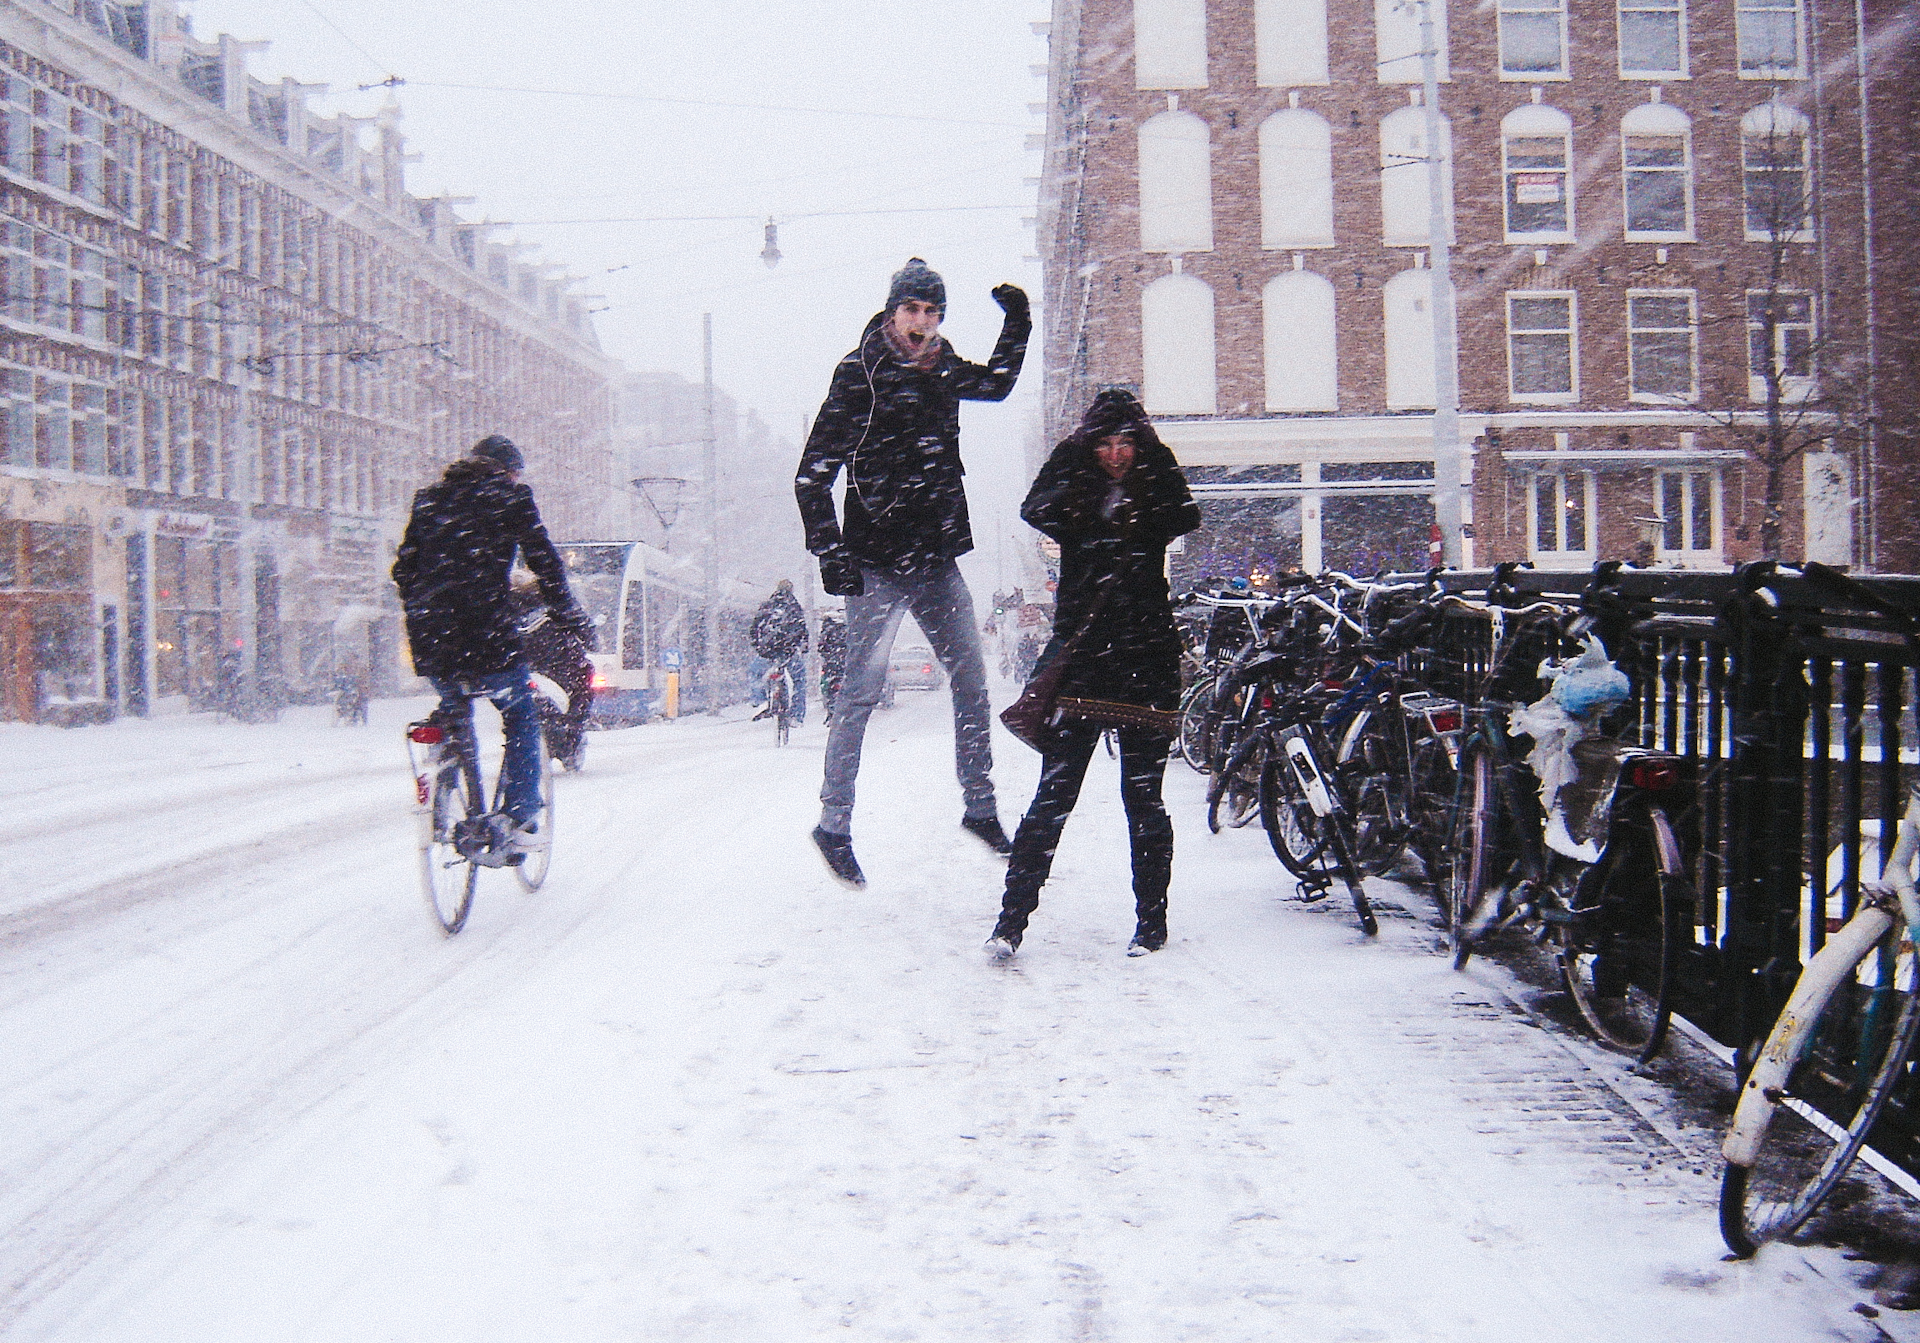 amsterdam-winters-west-color-rev-le-2